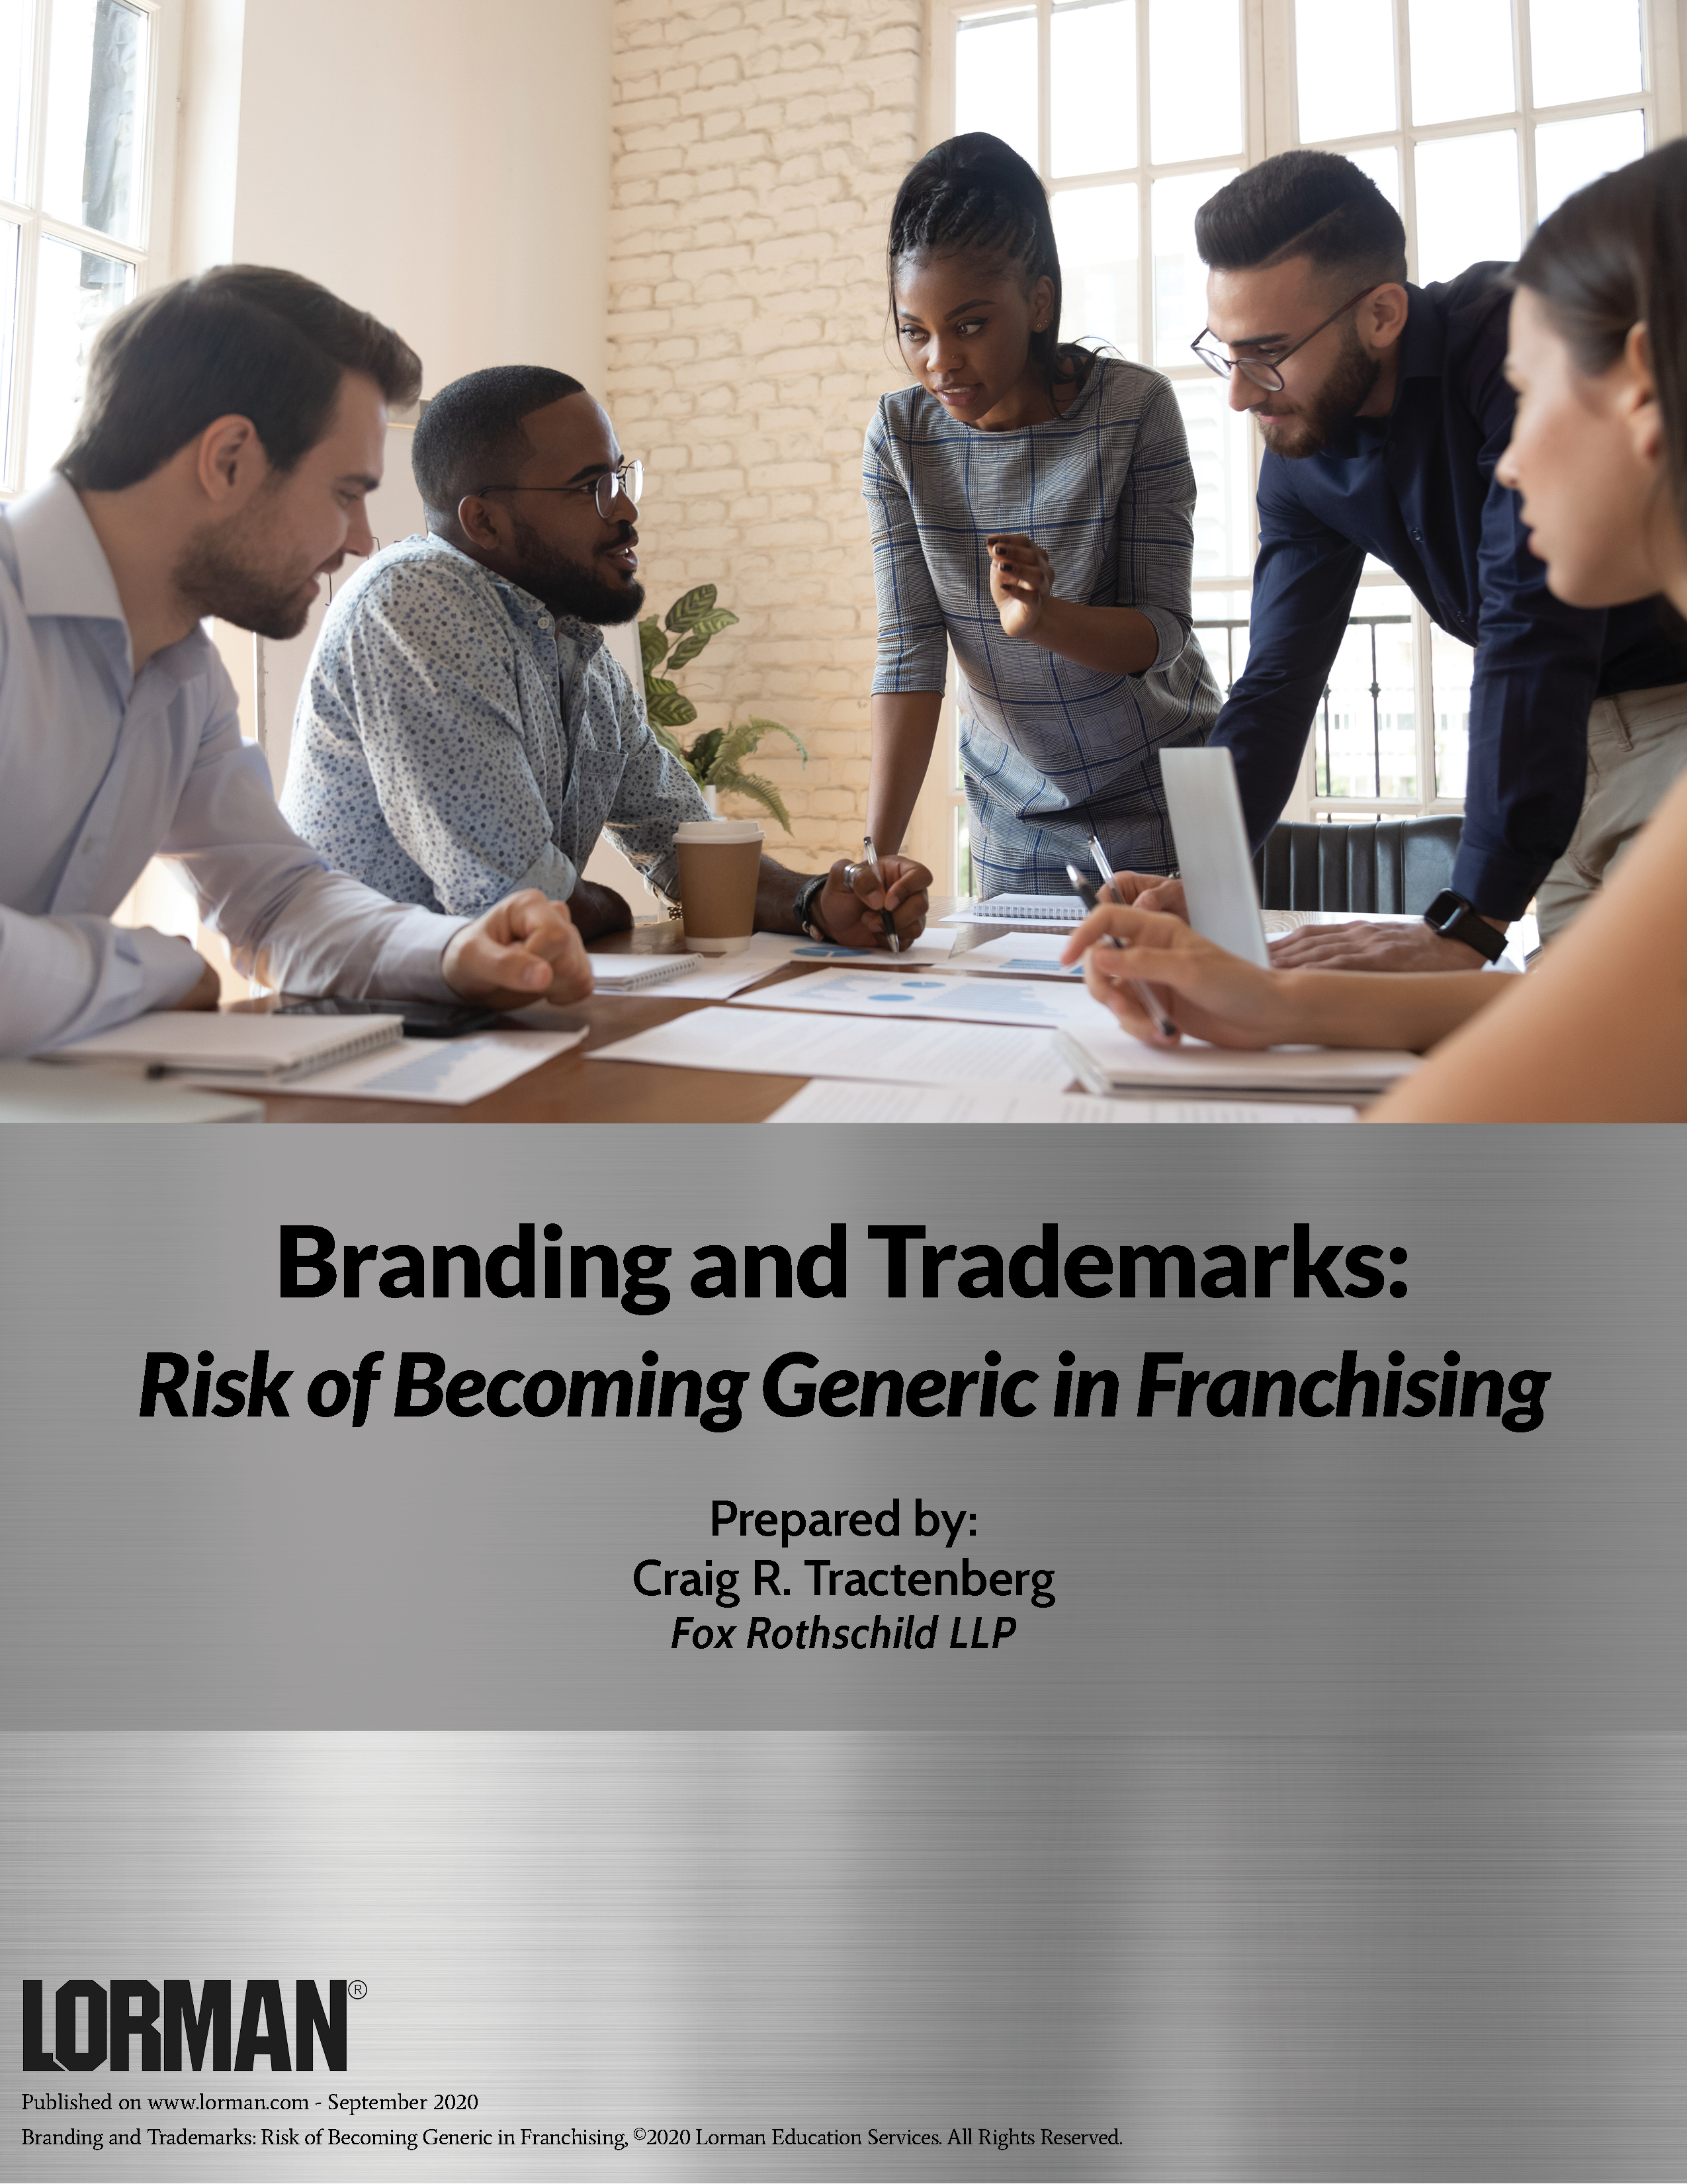 Branding and Trademarks